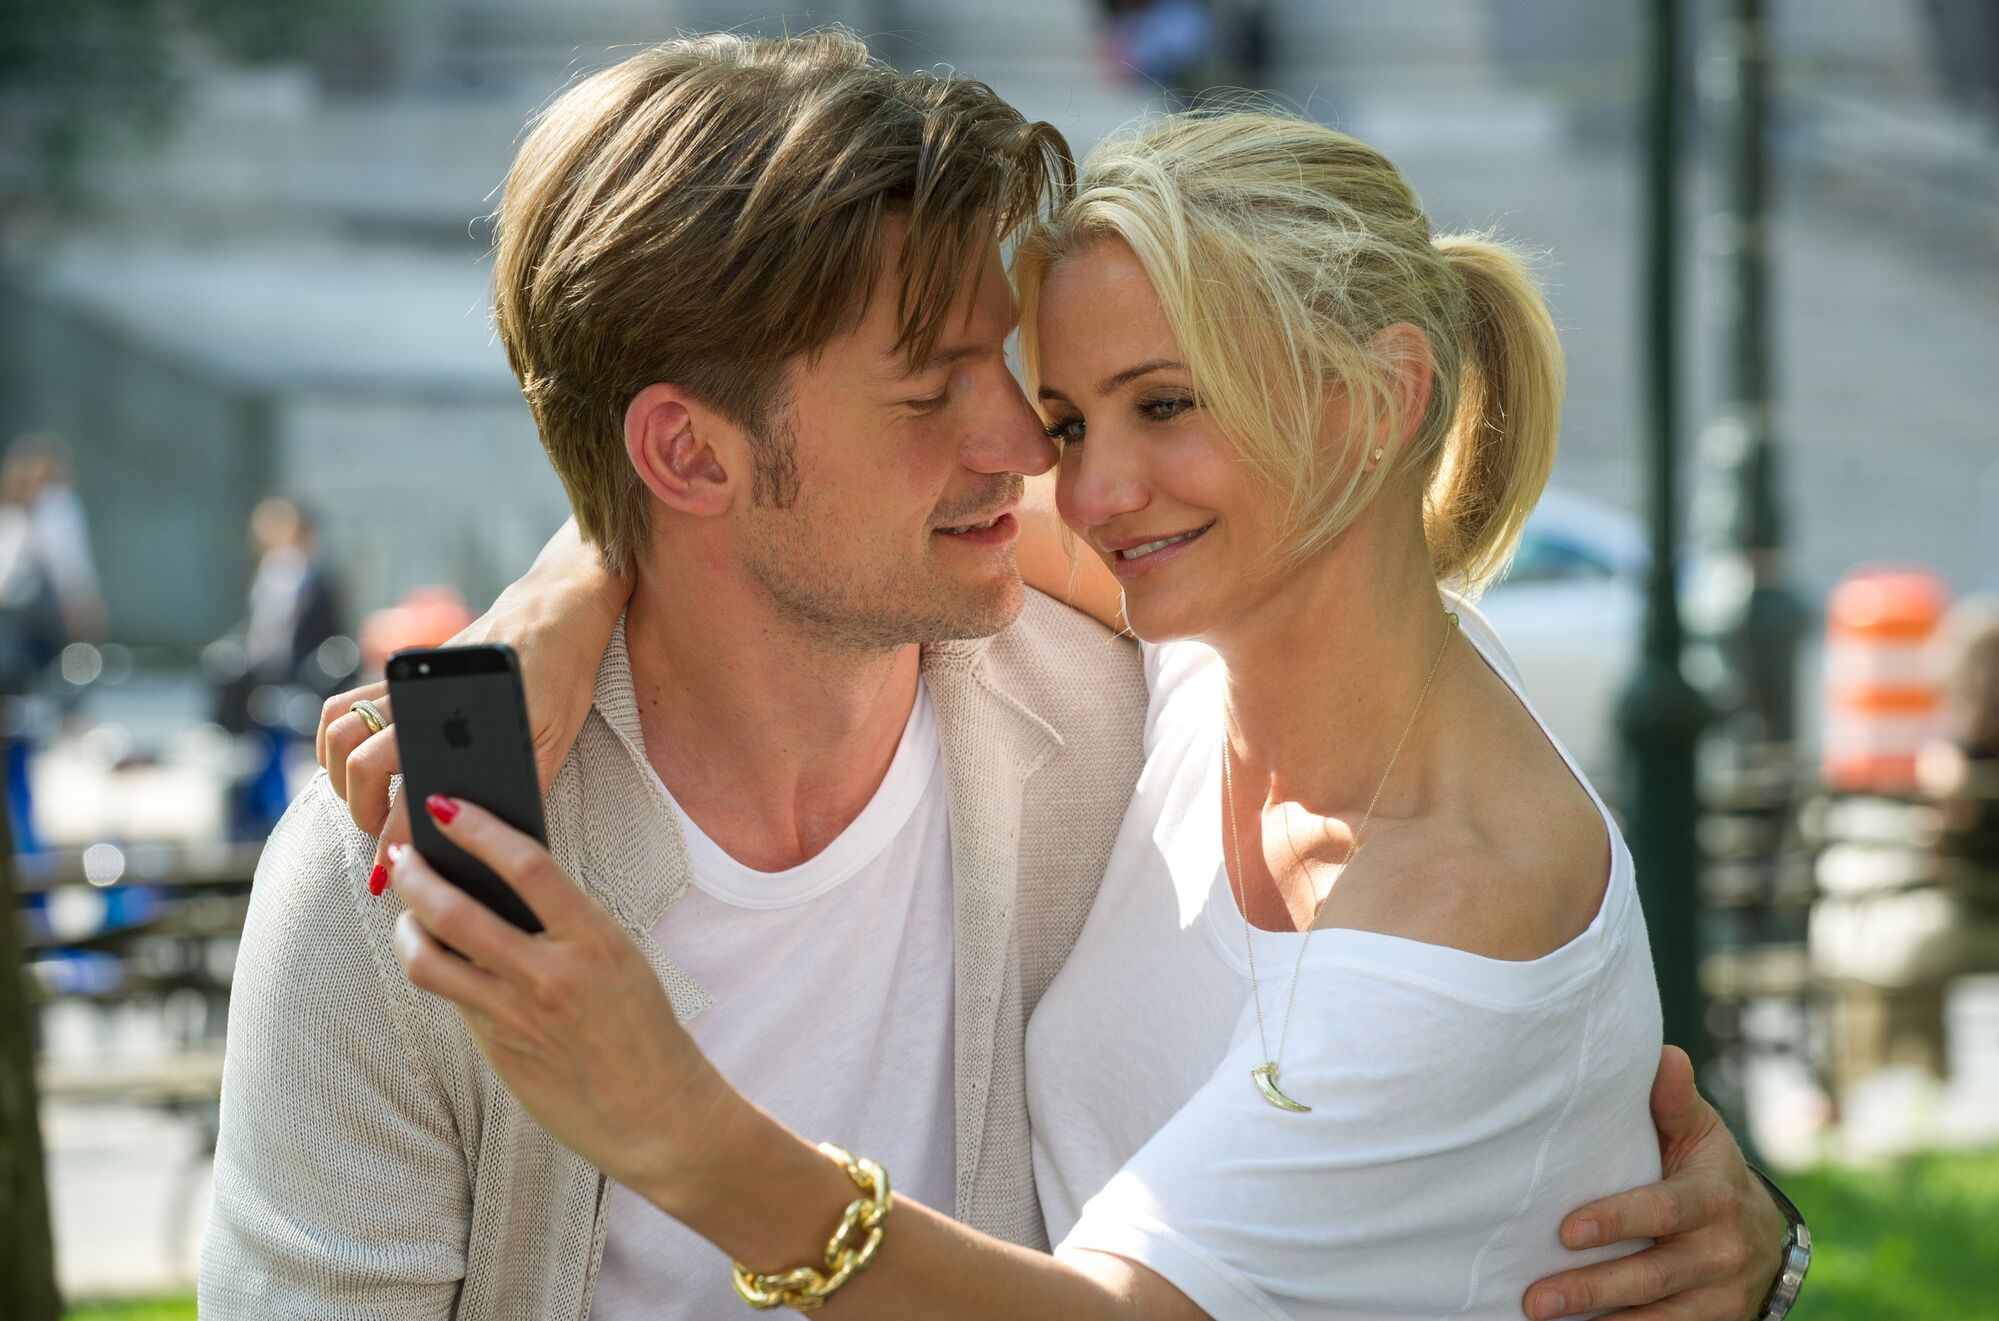 Cameron Diaz and Nikolaj Coster-Waldau in The Other Woman.